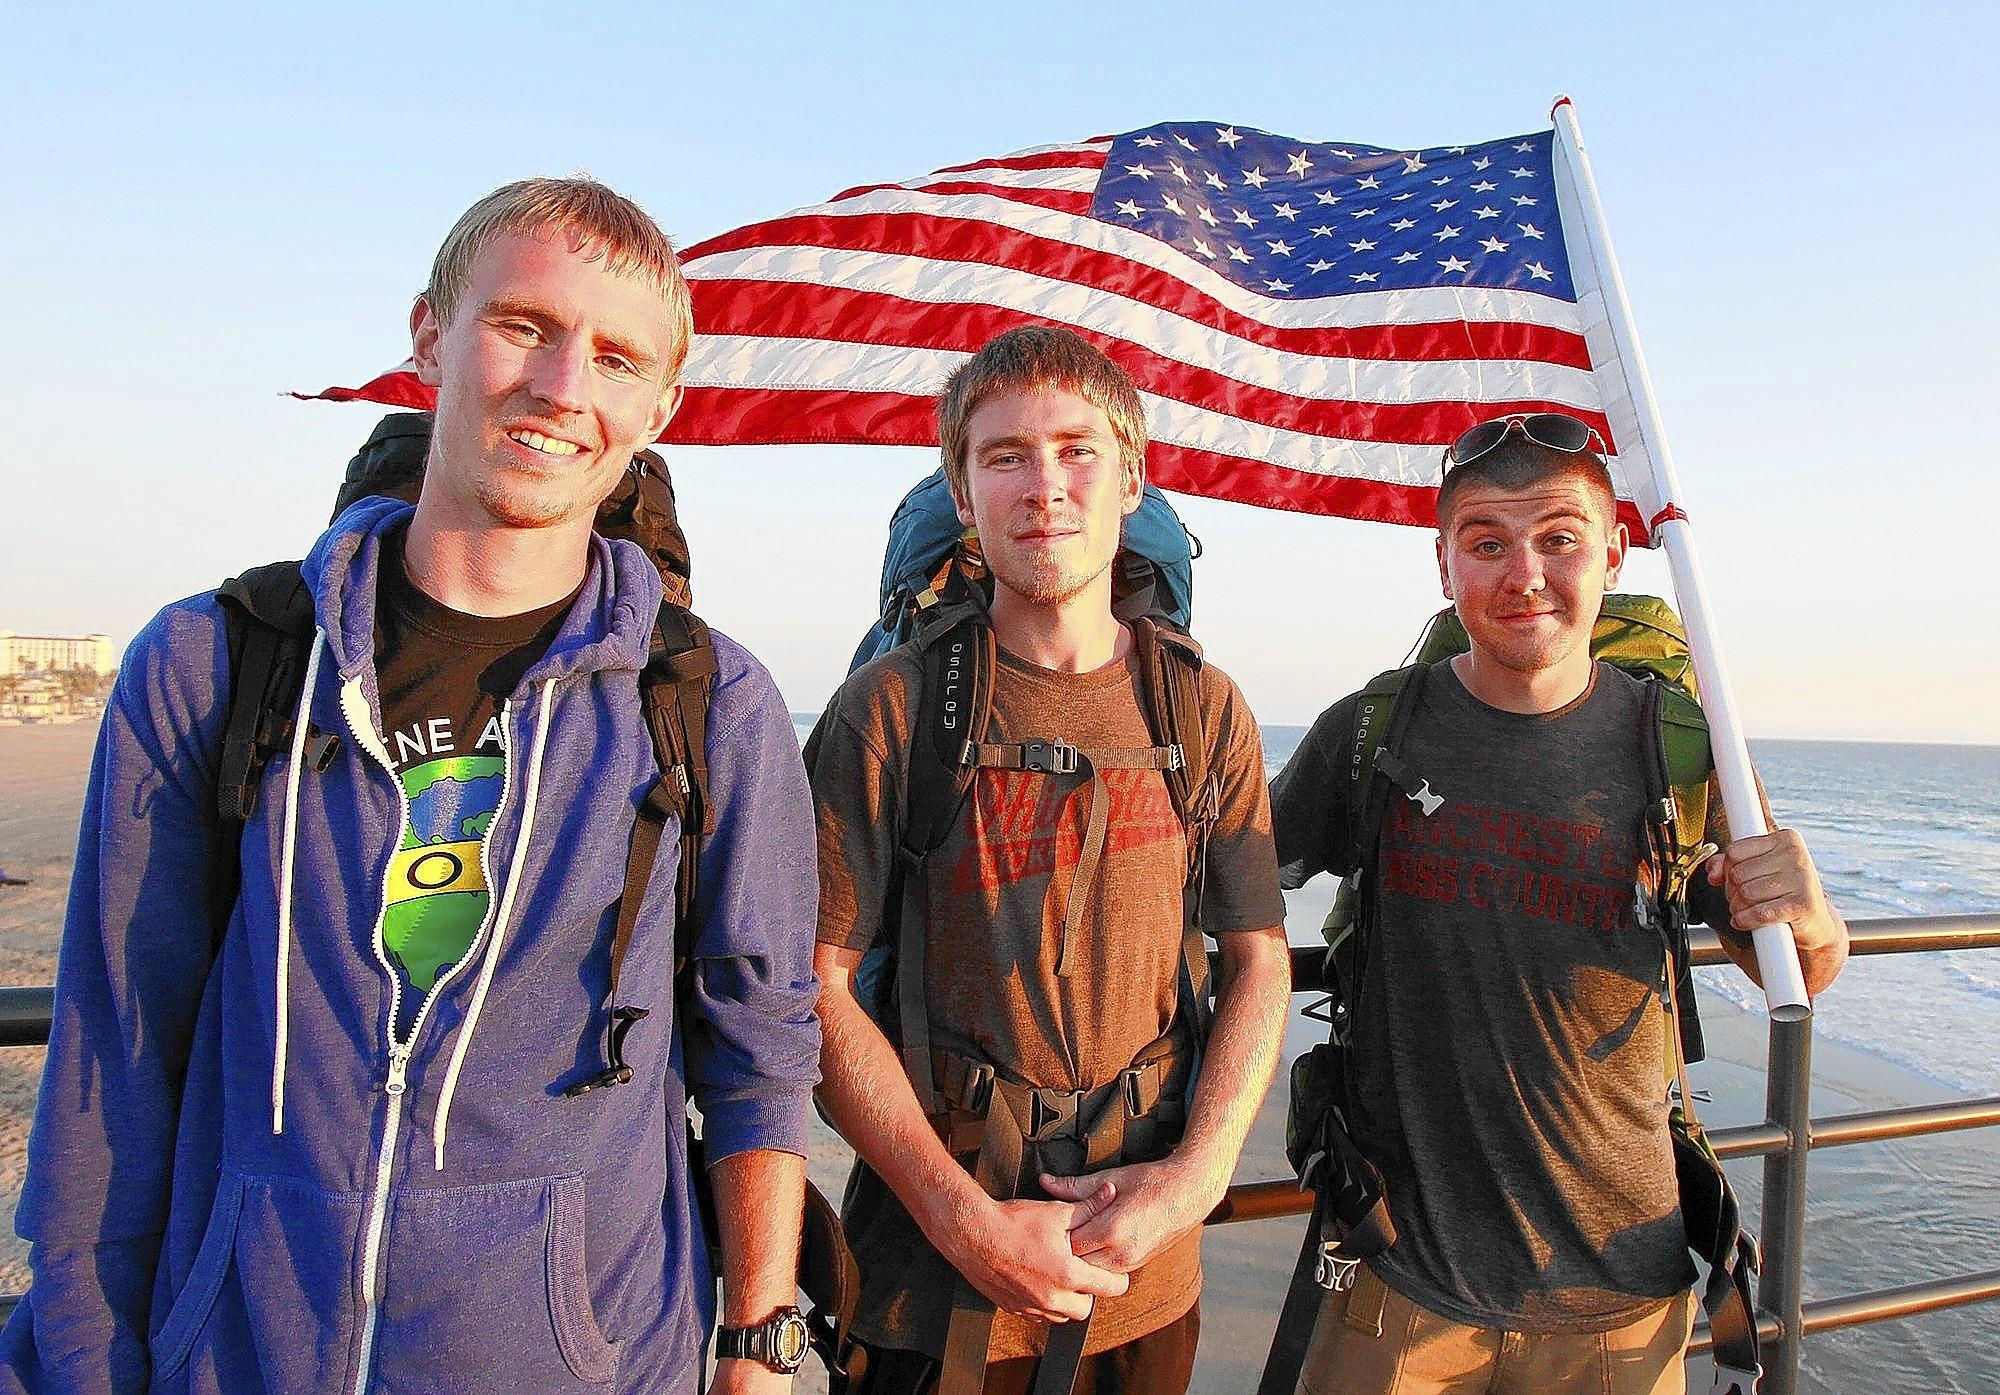 George Crawford, Drew Babcock and Mike Ross happily stand on the Huntington Beach Pier after they arrived at the Pacific Ocean after walking across America from Connecticut for the Livestong Foundation in an effort to fight cancer.